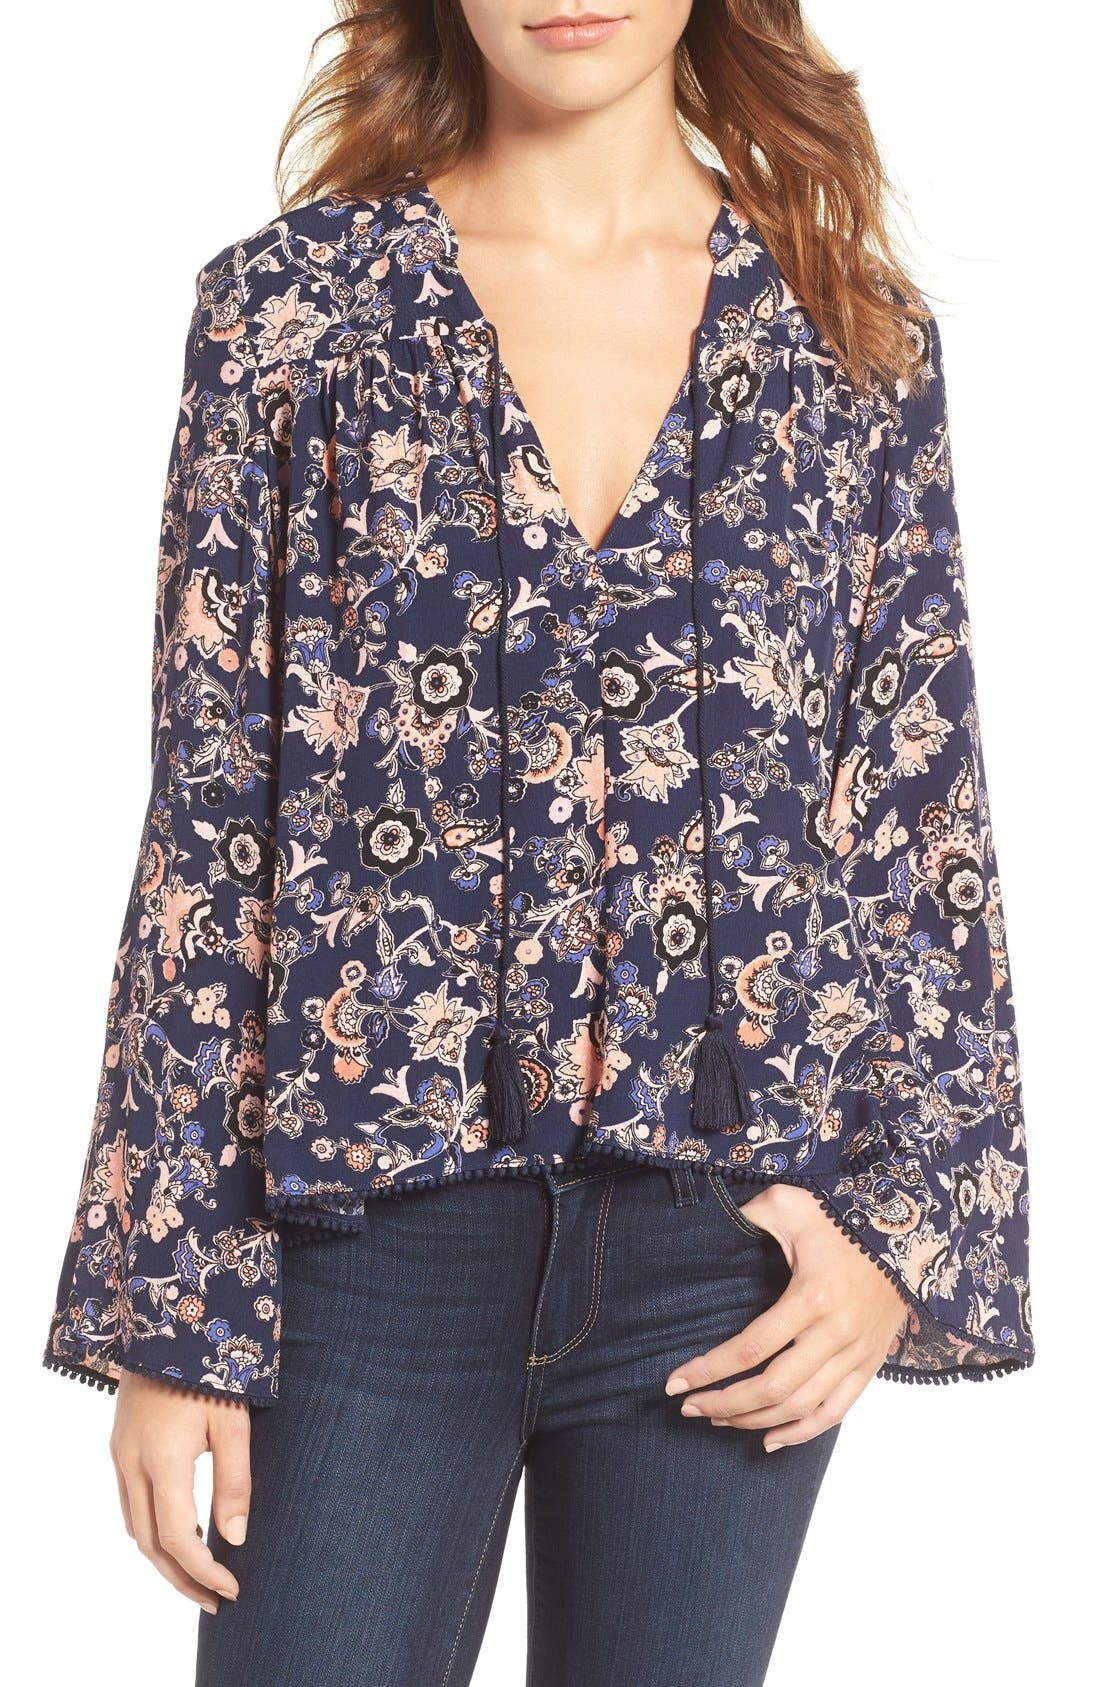 Alternate Image 1 Selected - Rebecca Minkoff Frenchie Top